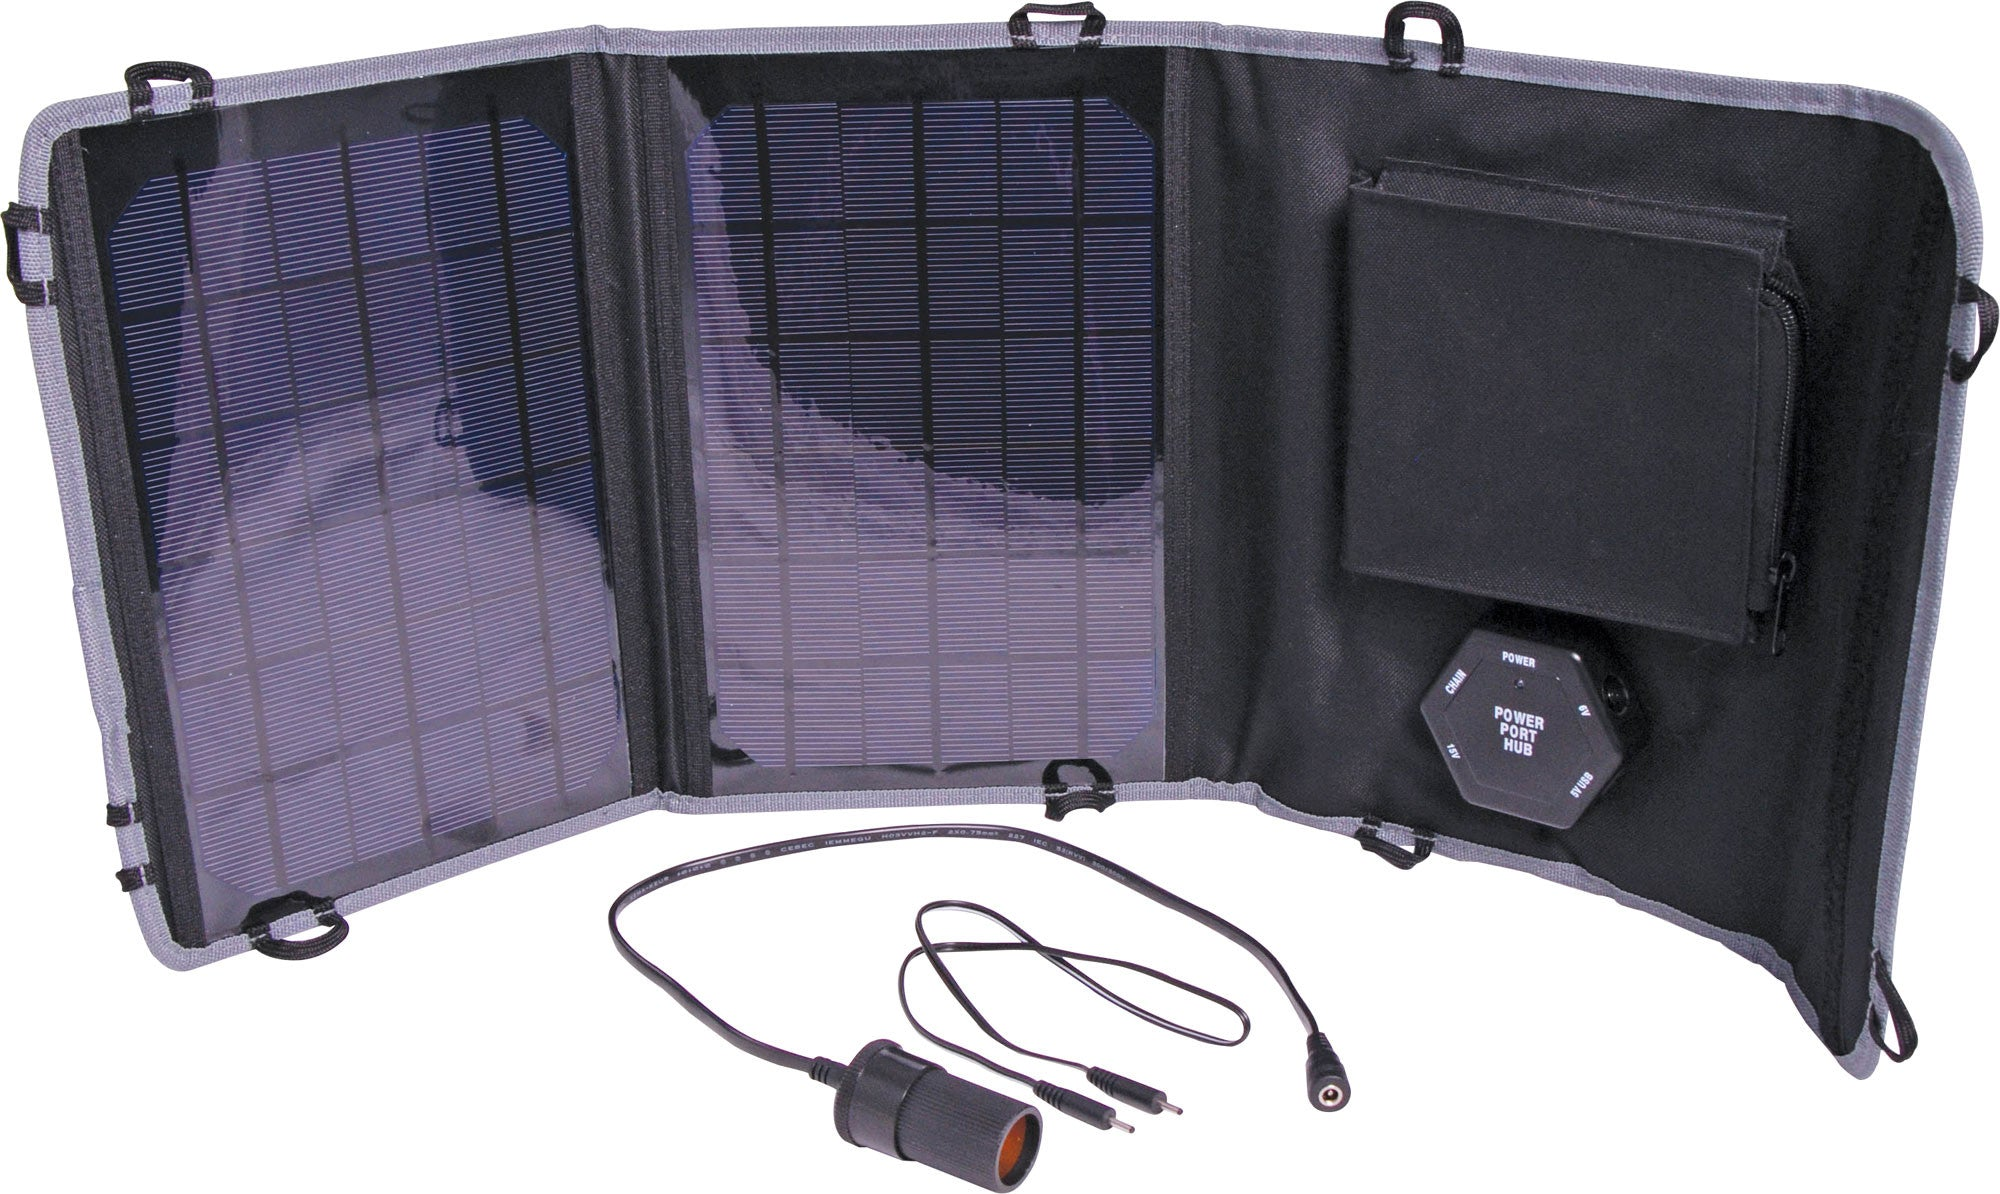 Powertran Powertran 10W 6 -15V Fold Out Portable Solar Battery Charger - BNR Industrial